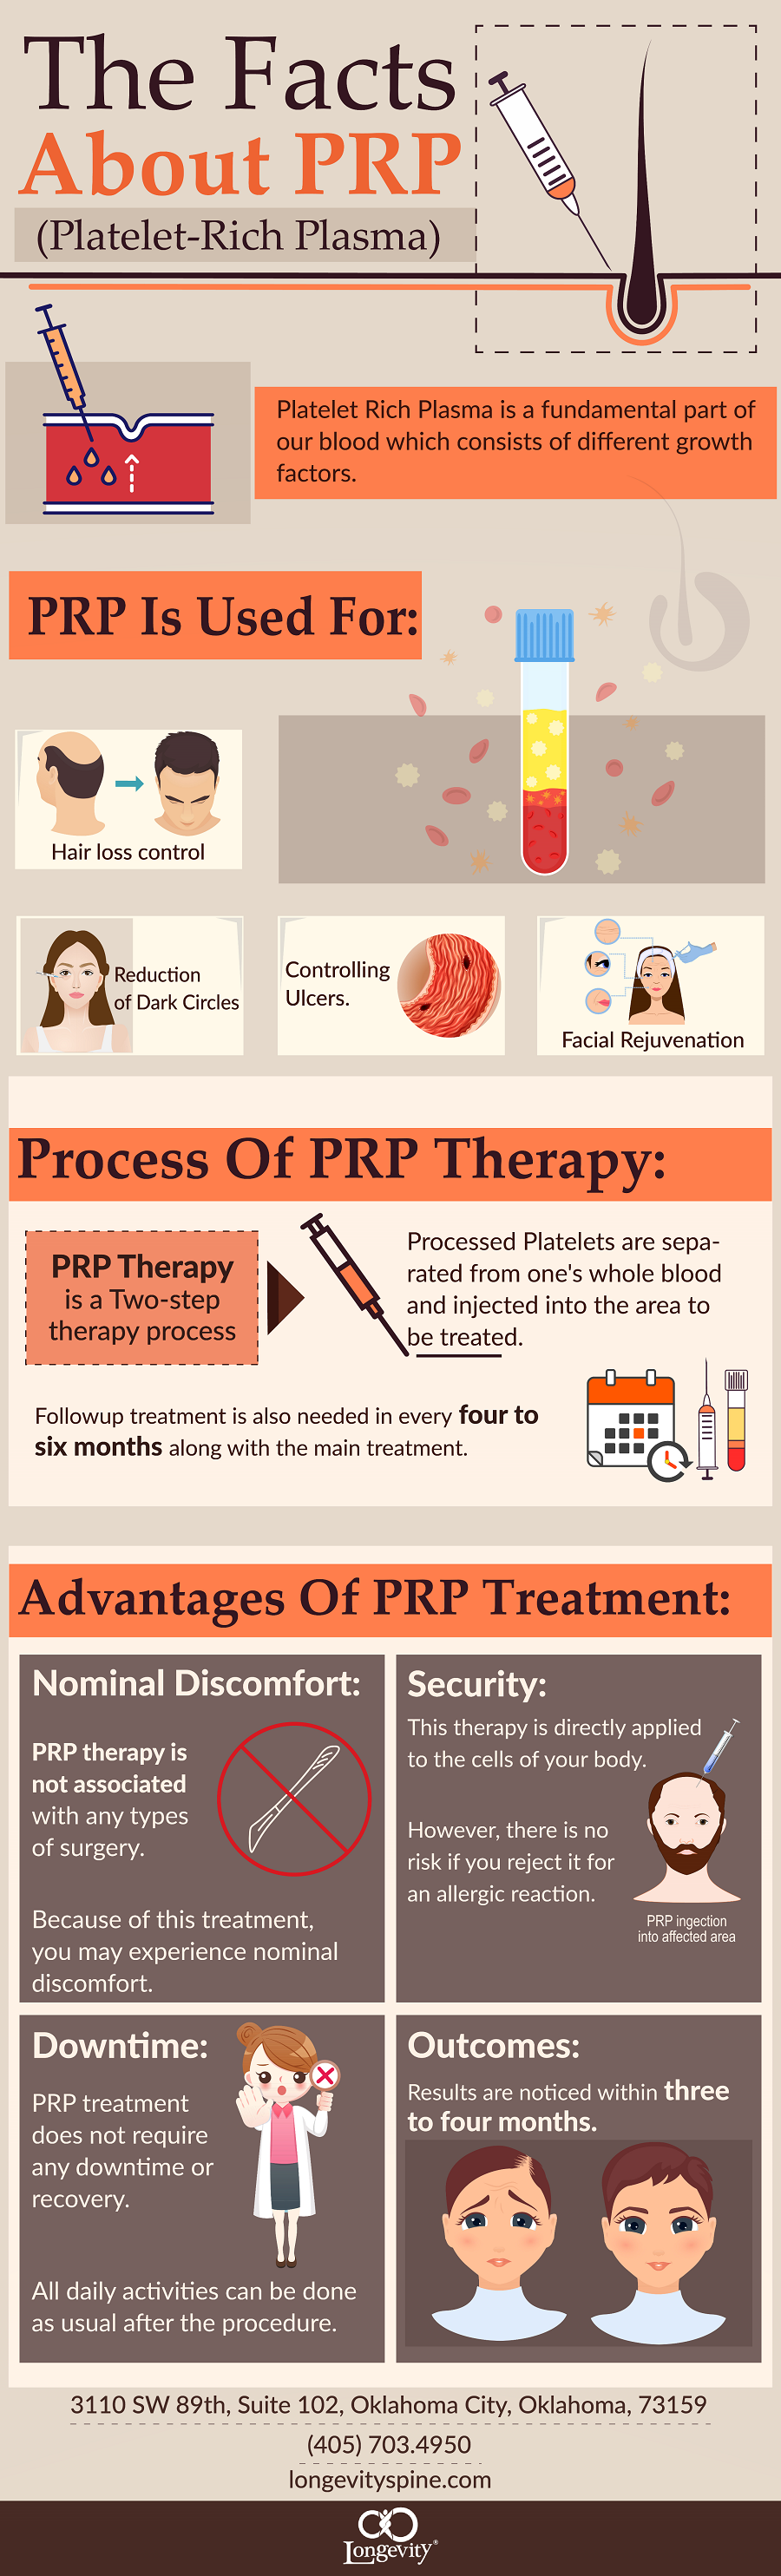 PRP Therapy: What It Is, How It Works - Infographic